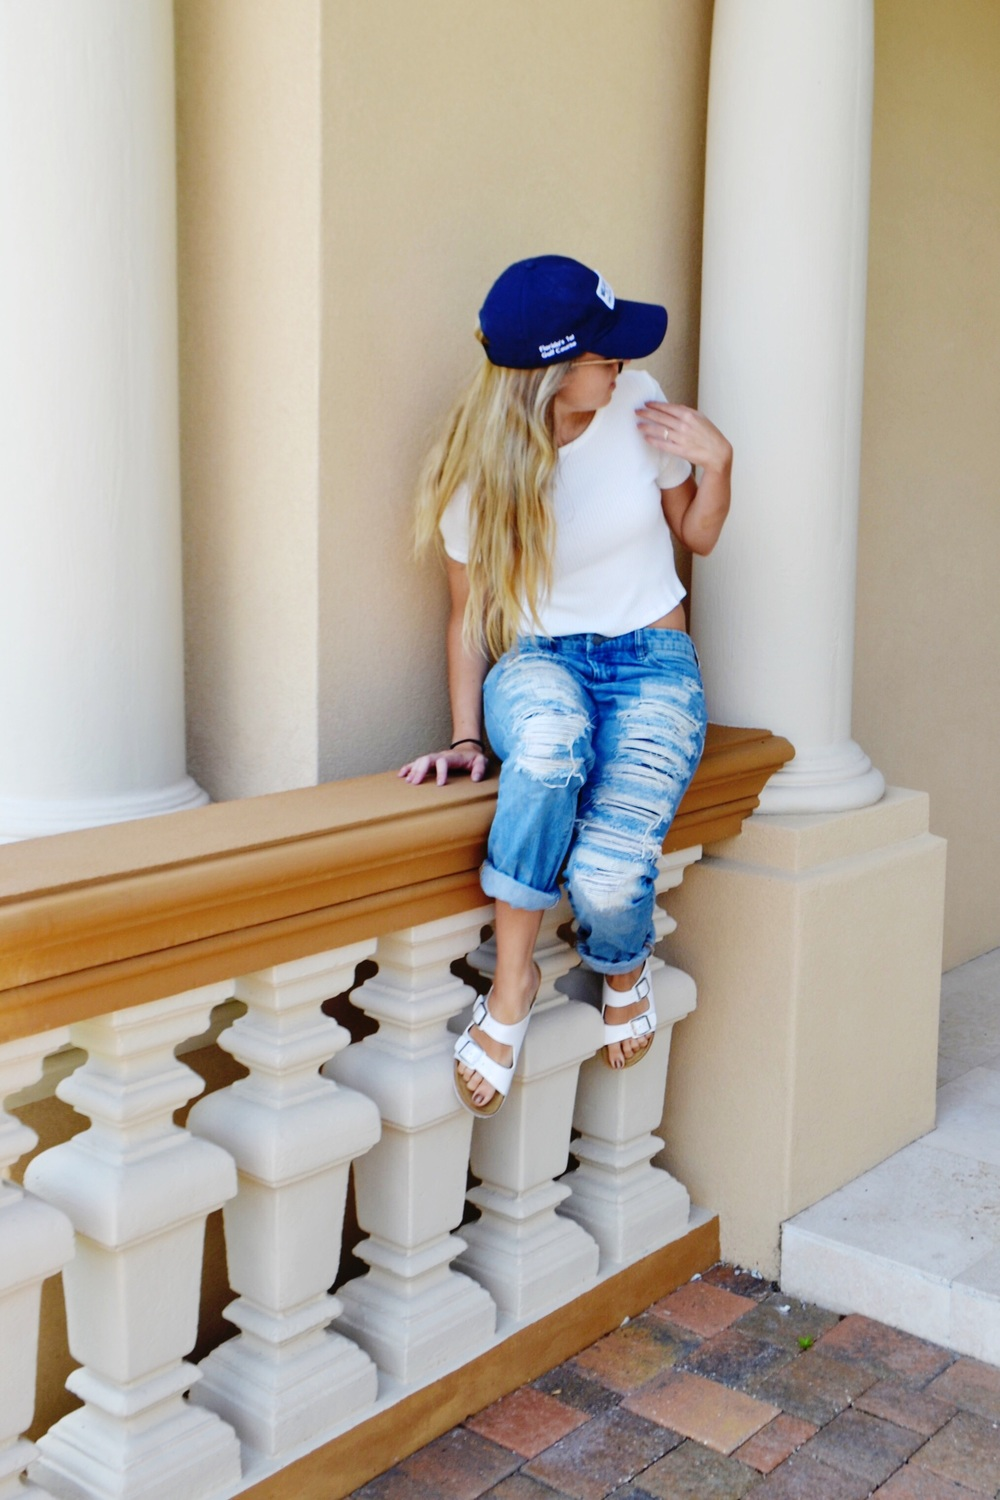 hat: a local country club; shirt: brandy melville; jeans: [BLANKNYC]; shoes: Steve Madden; sunglasses: Burberry